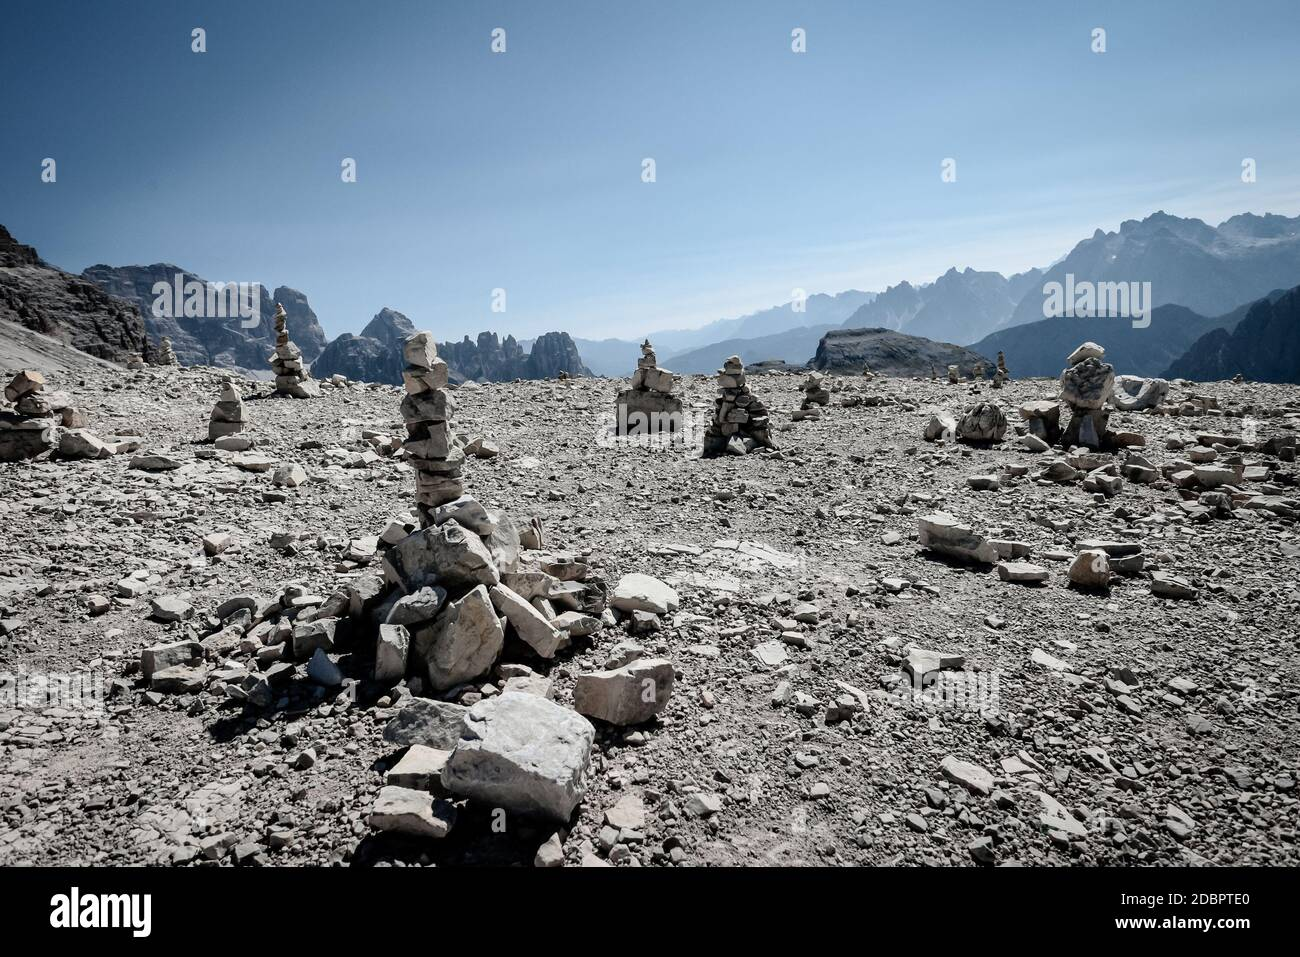 Stacked stones (Cairns) on Monte Paterno (Paternkofel) mountain of the Tre Cime de Lavaredo circuit in the Dolomites, European Alps, northern Italy. Stock Photo